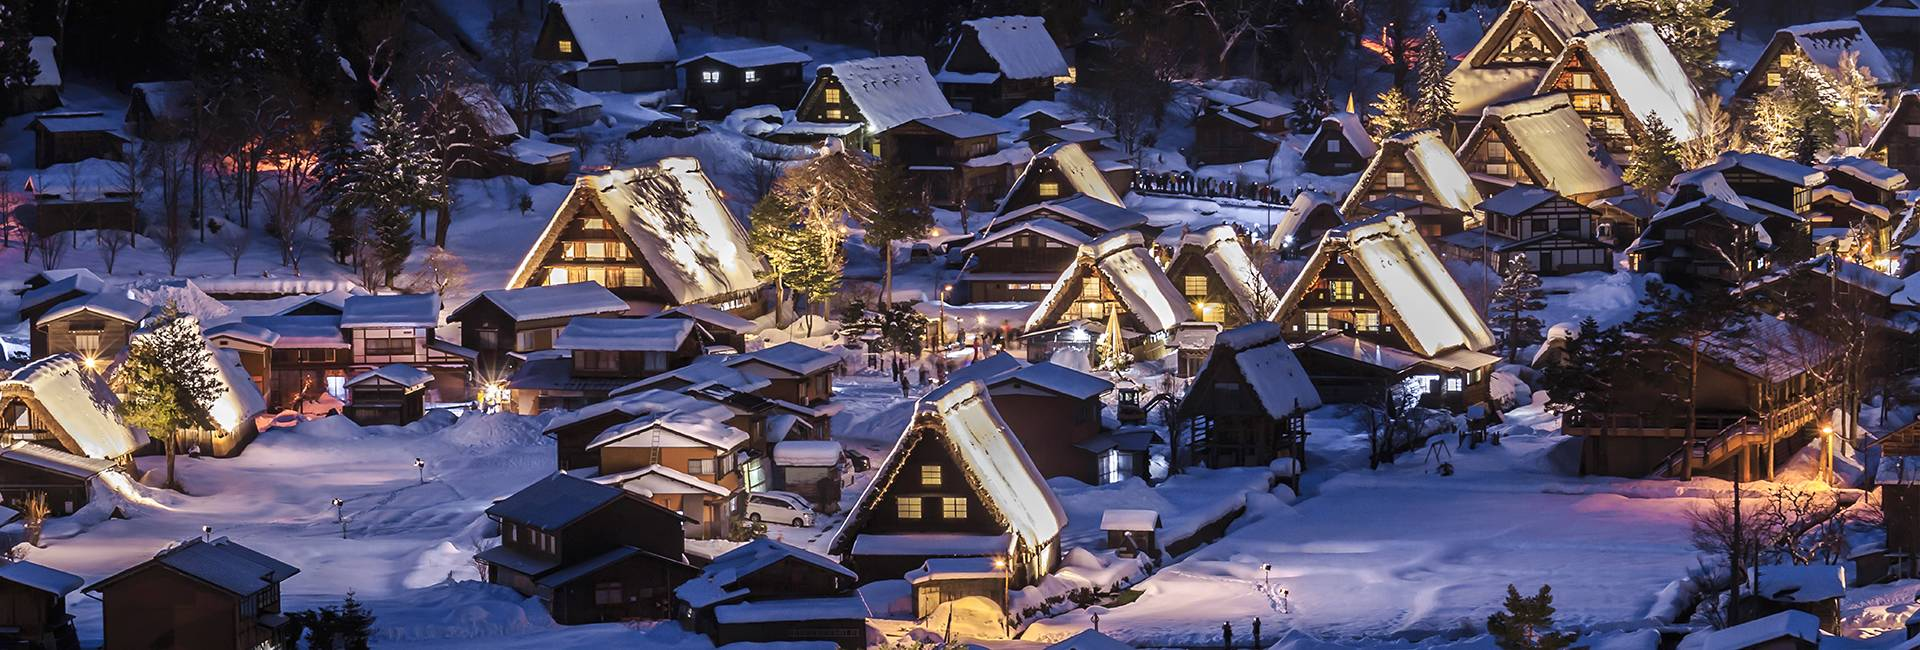 night view of Shirakawa-go in winter under the snow